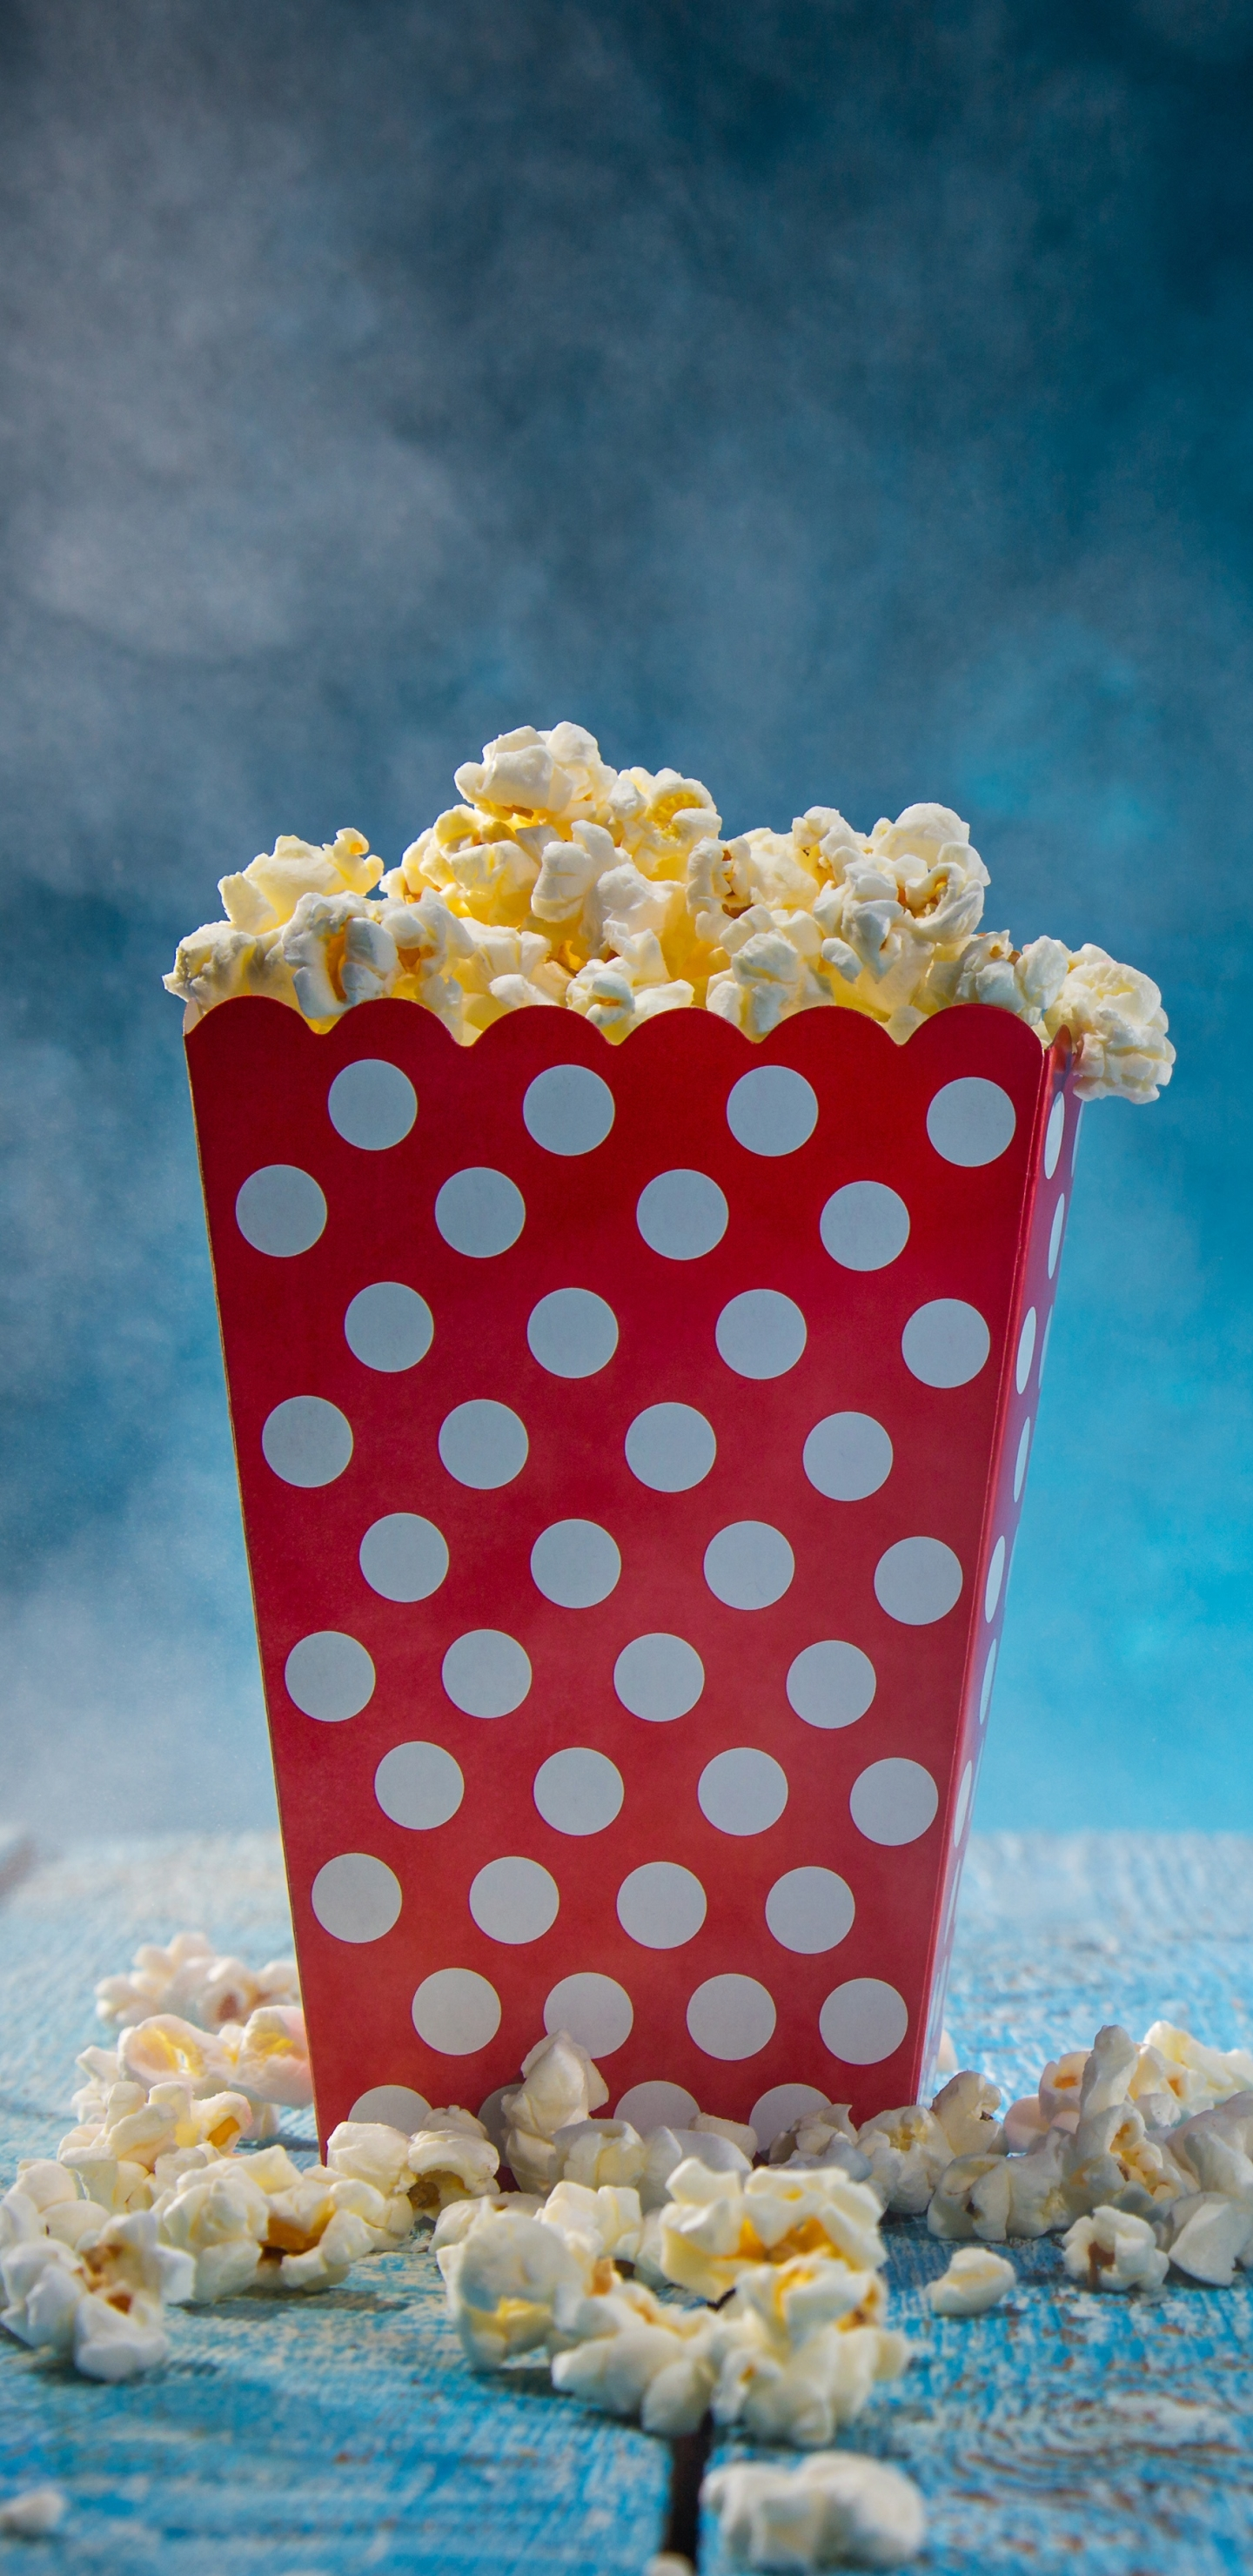 Food Popcorn 1440x2960 Wallpaper Id 781899 Mobile Abyss